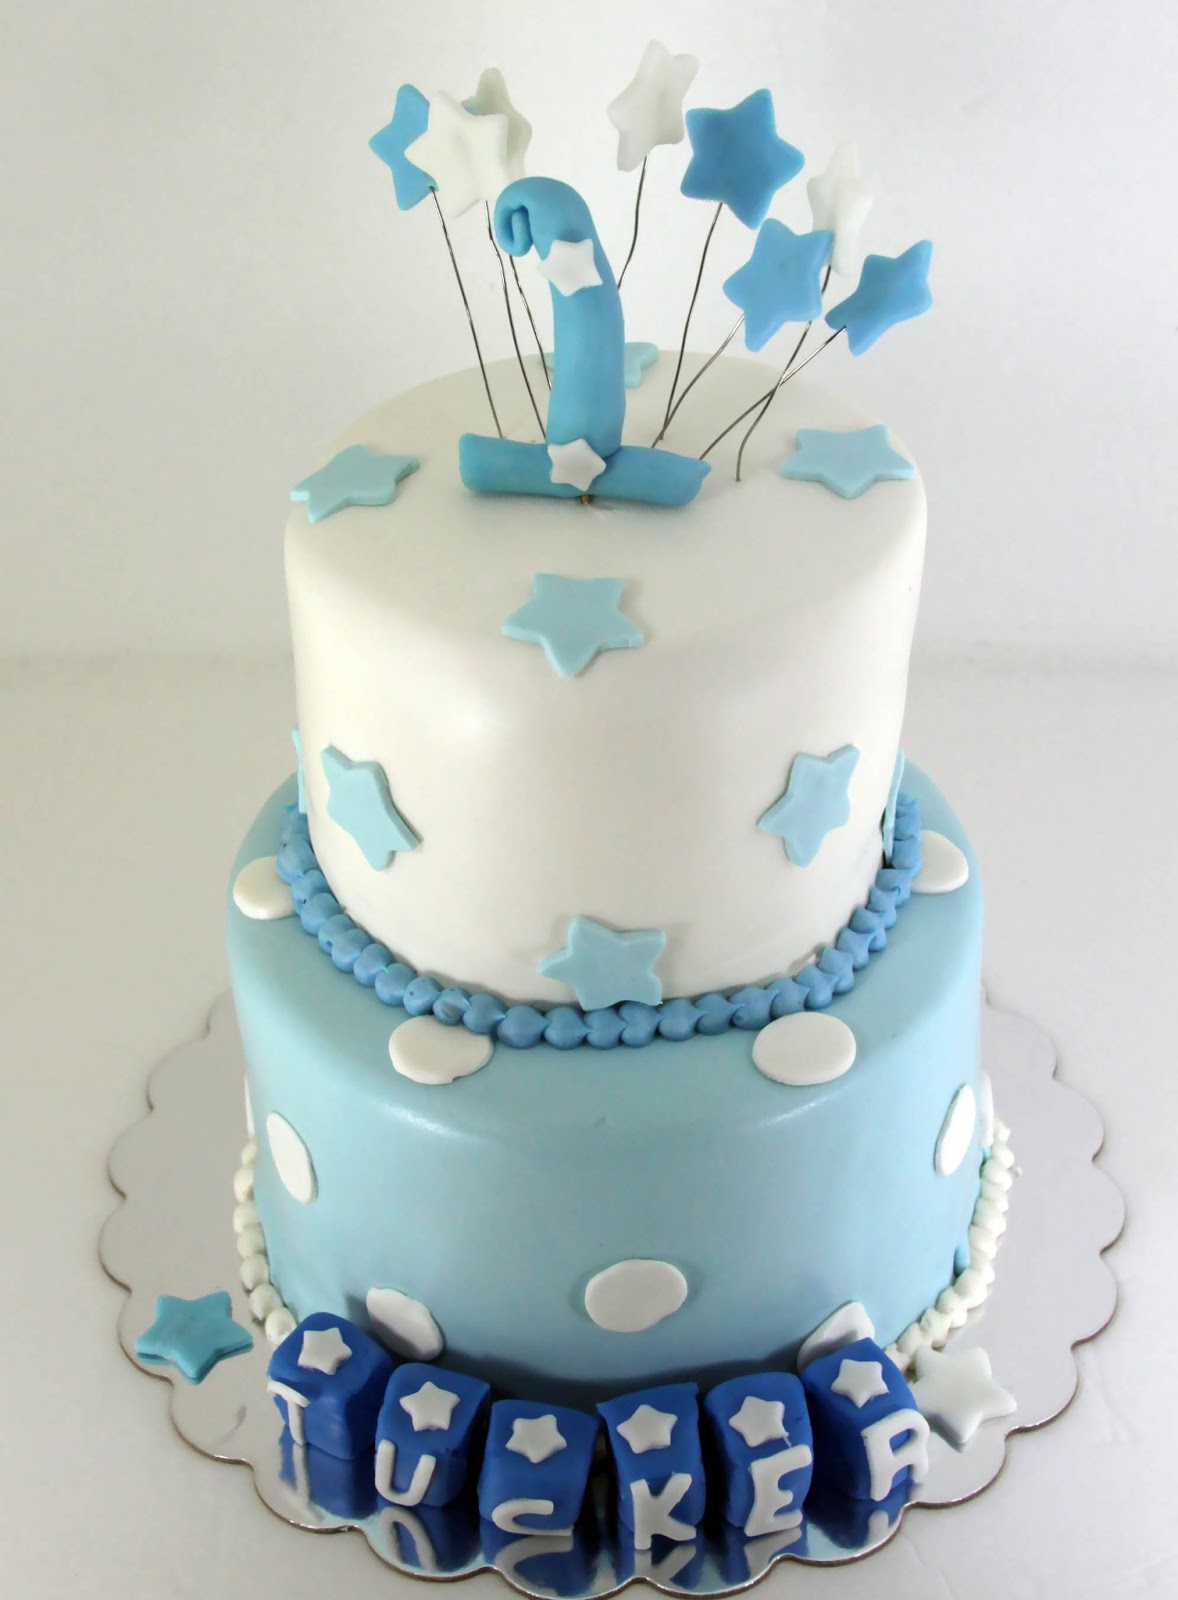 Birthday Cake For Boy First Birthday Image Inspiration of Cake and